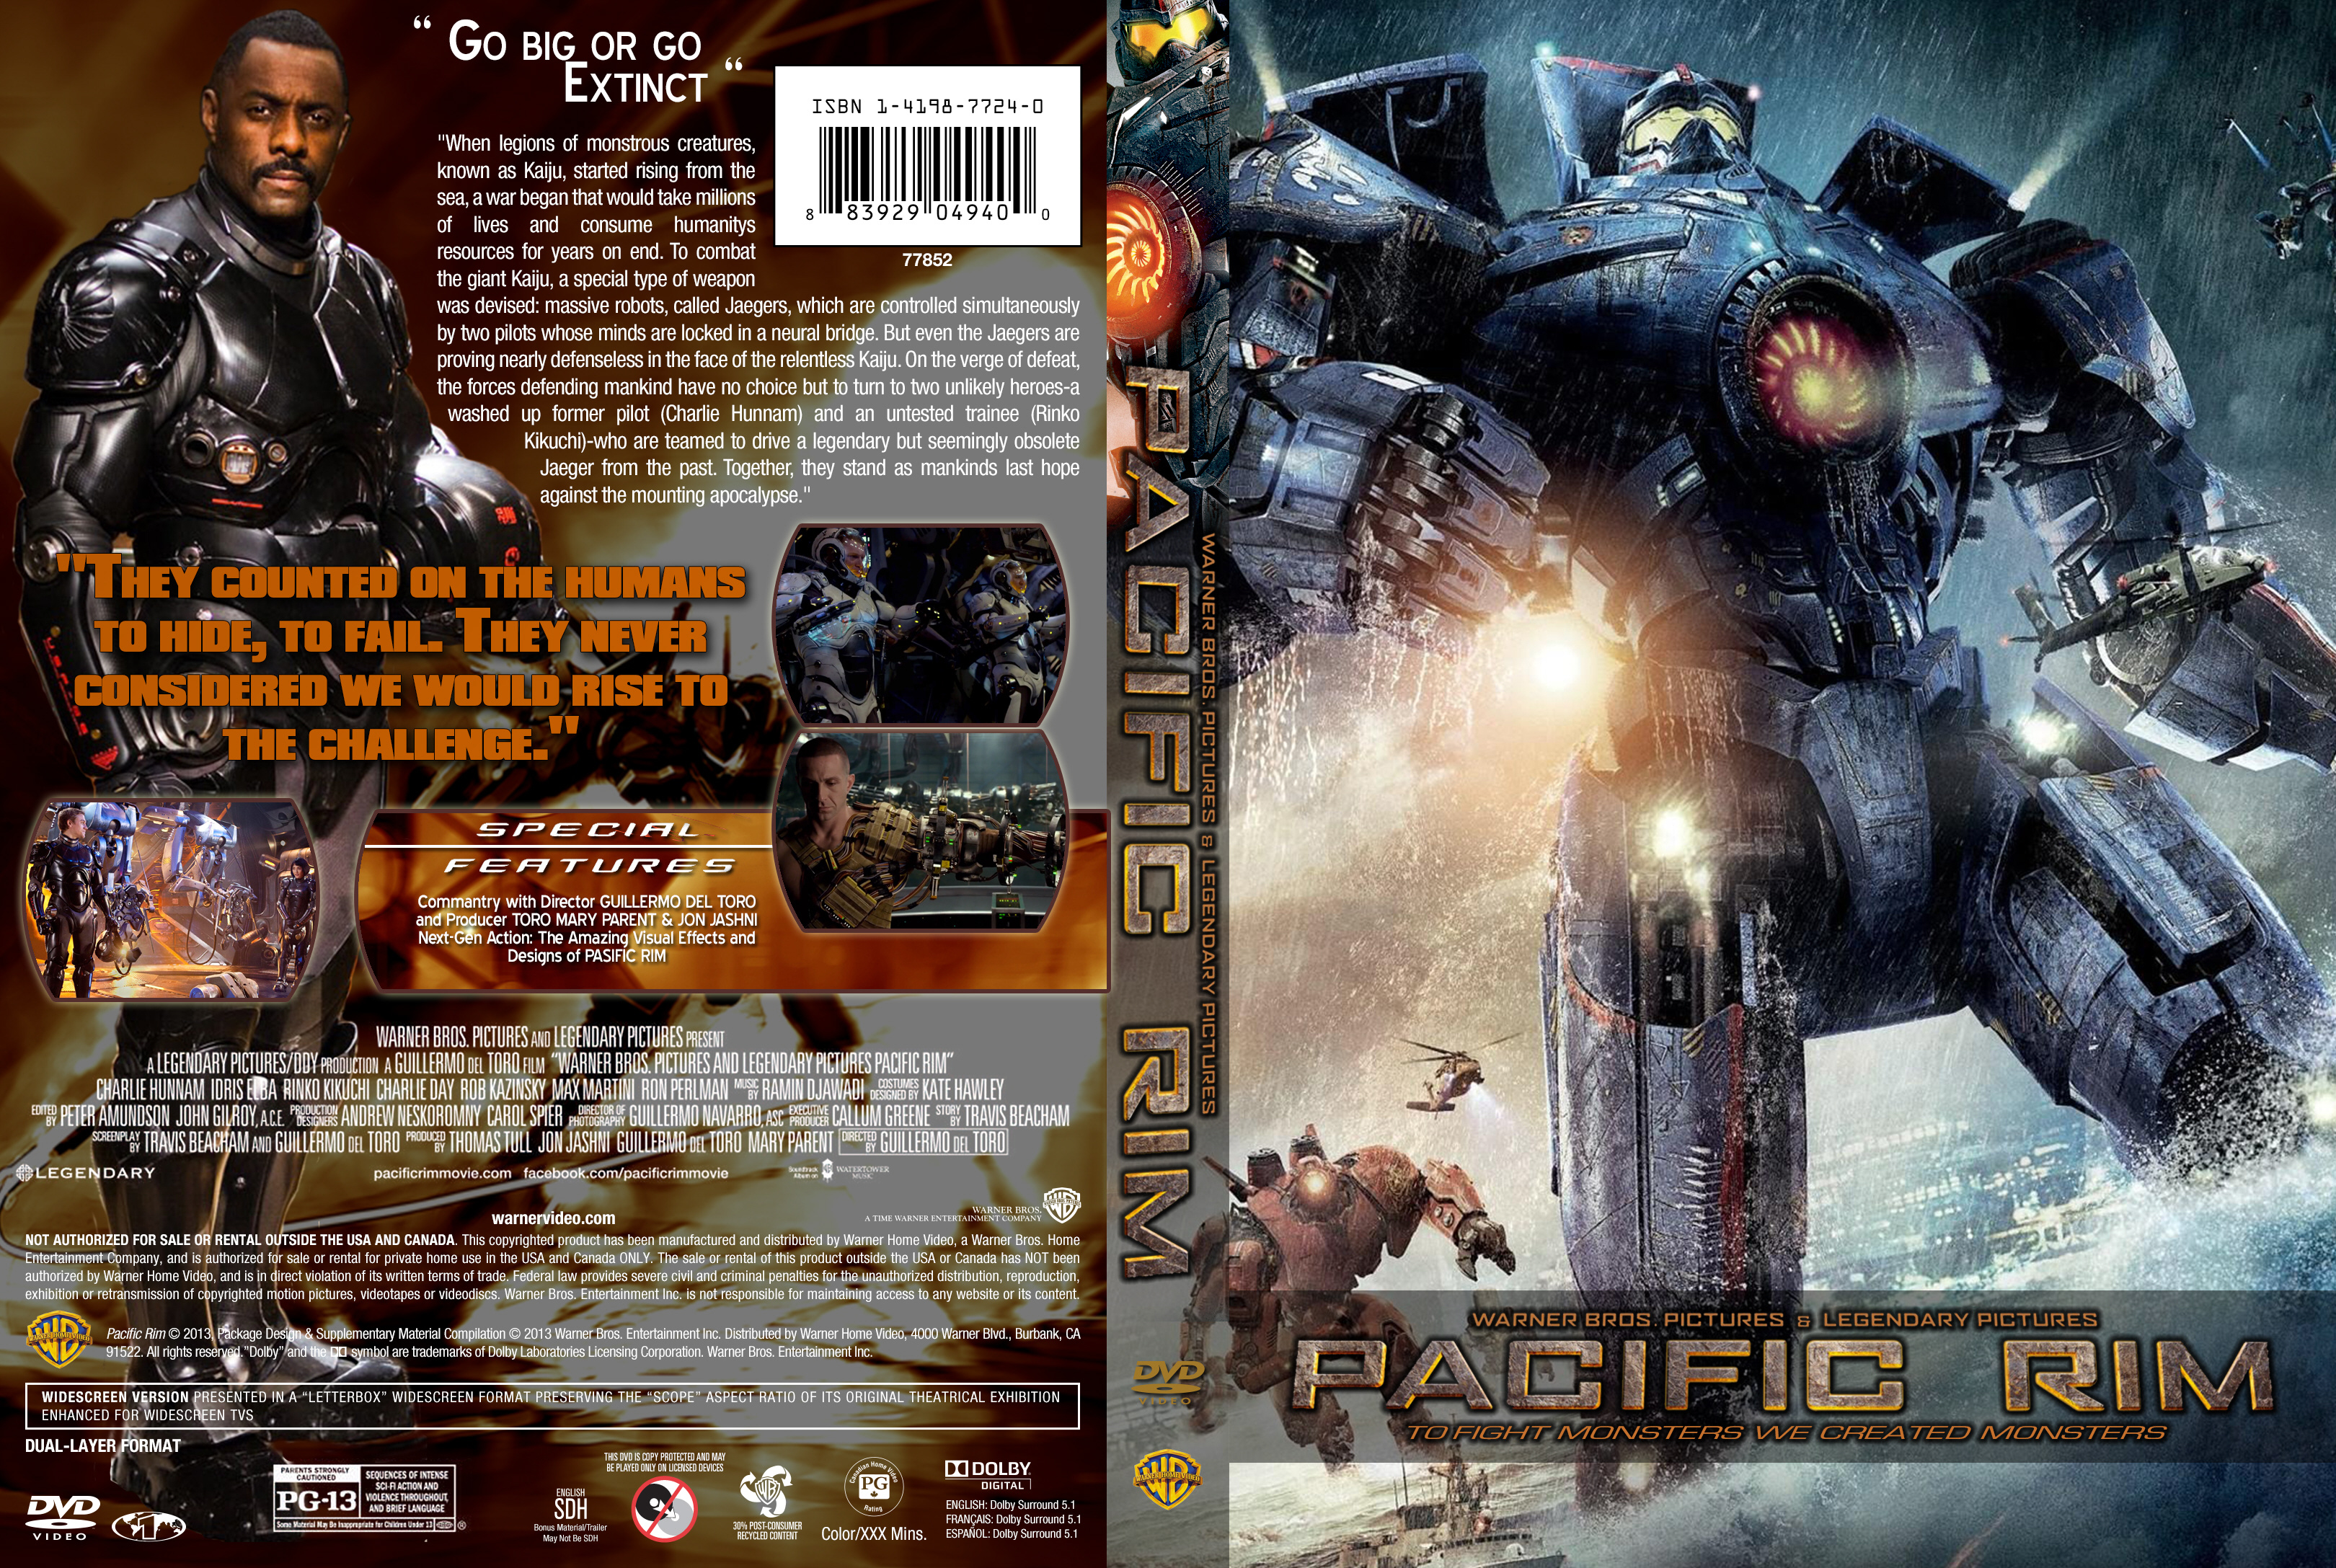 Pacific Rim Blu Ray Cover | www.imgkid.com - The Image Kid ... Pacific Rim 2013 Dvd Cover